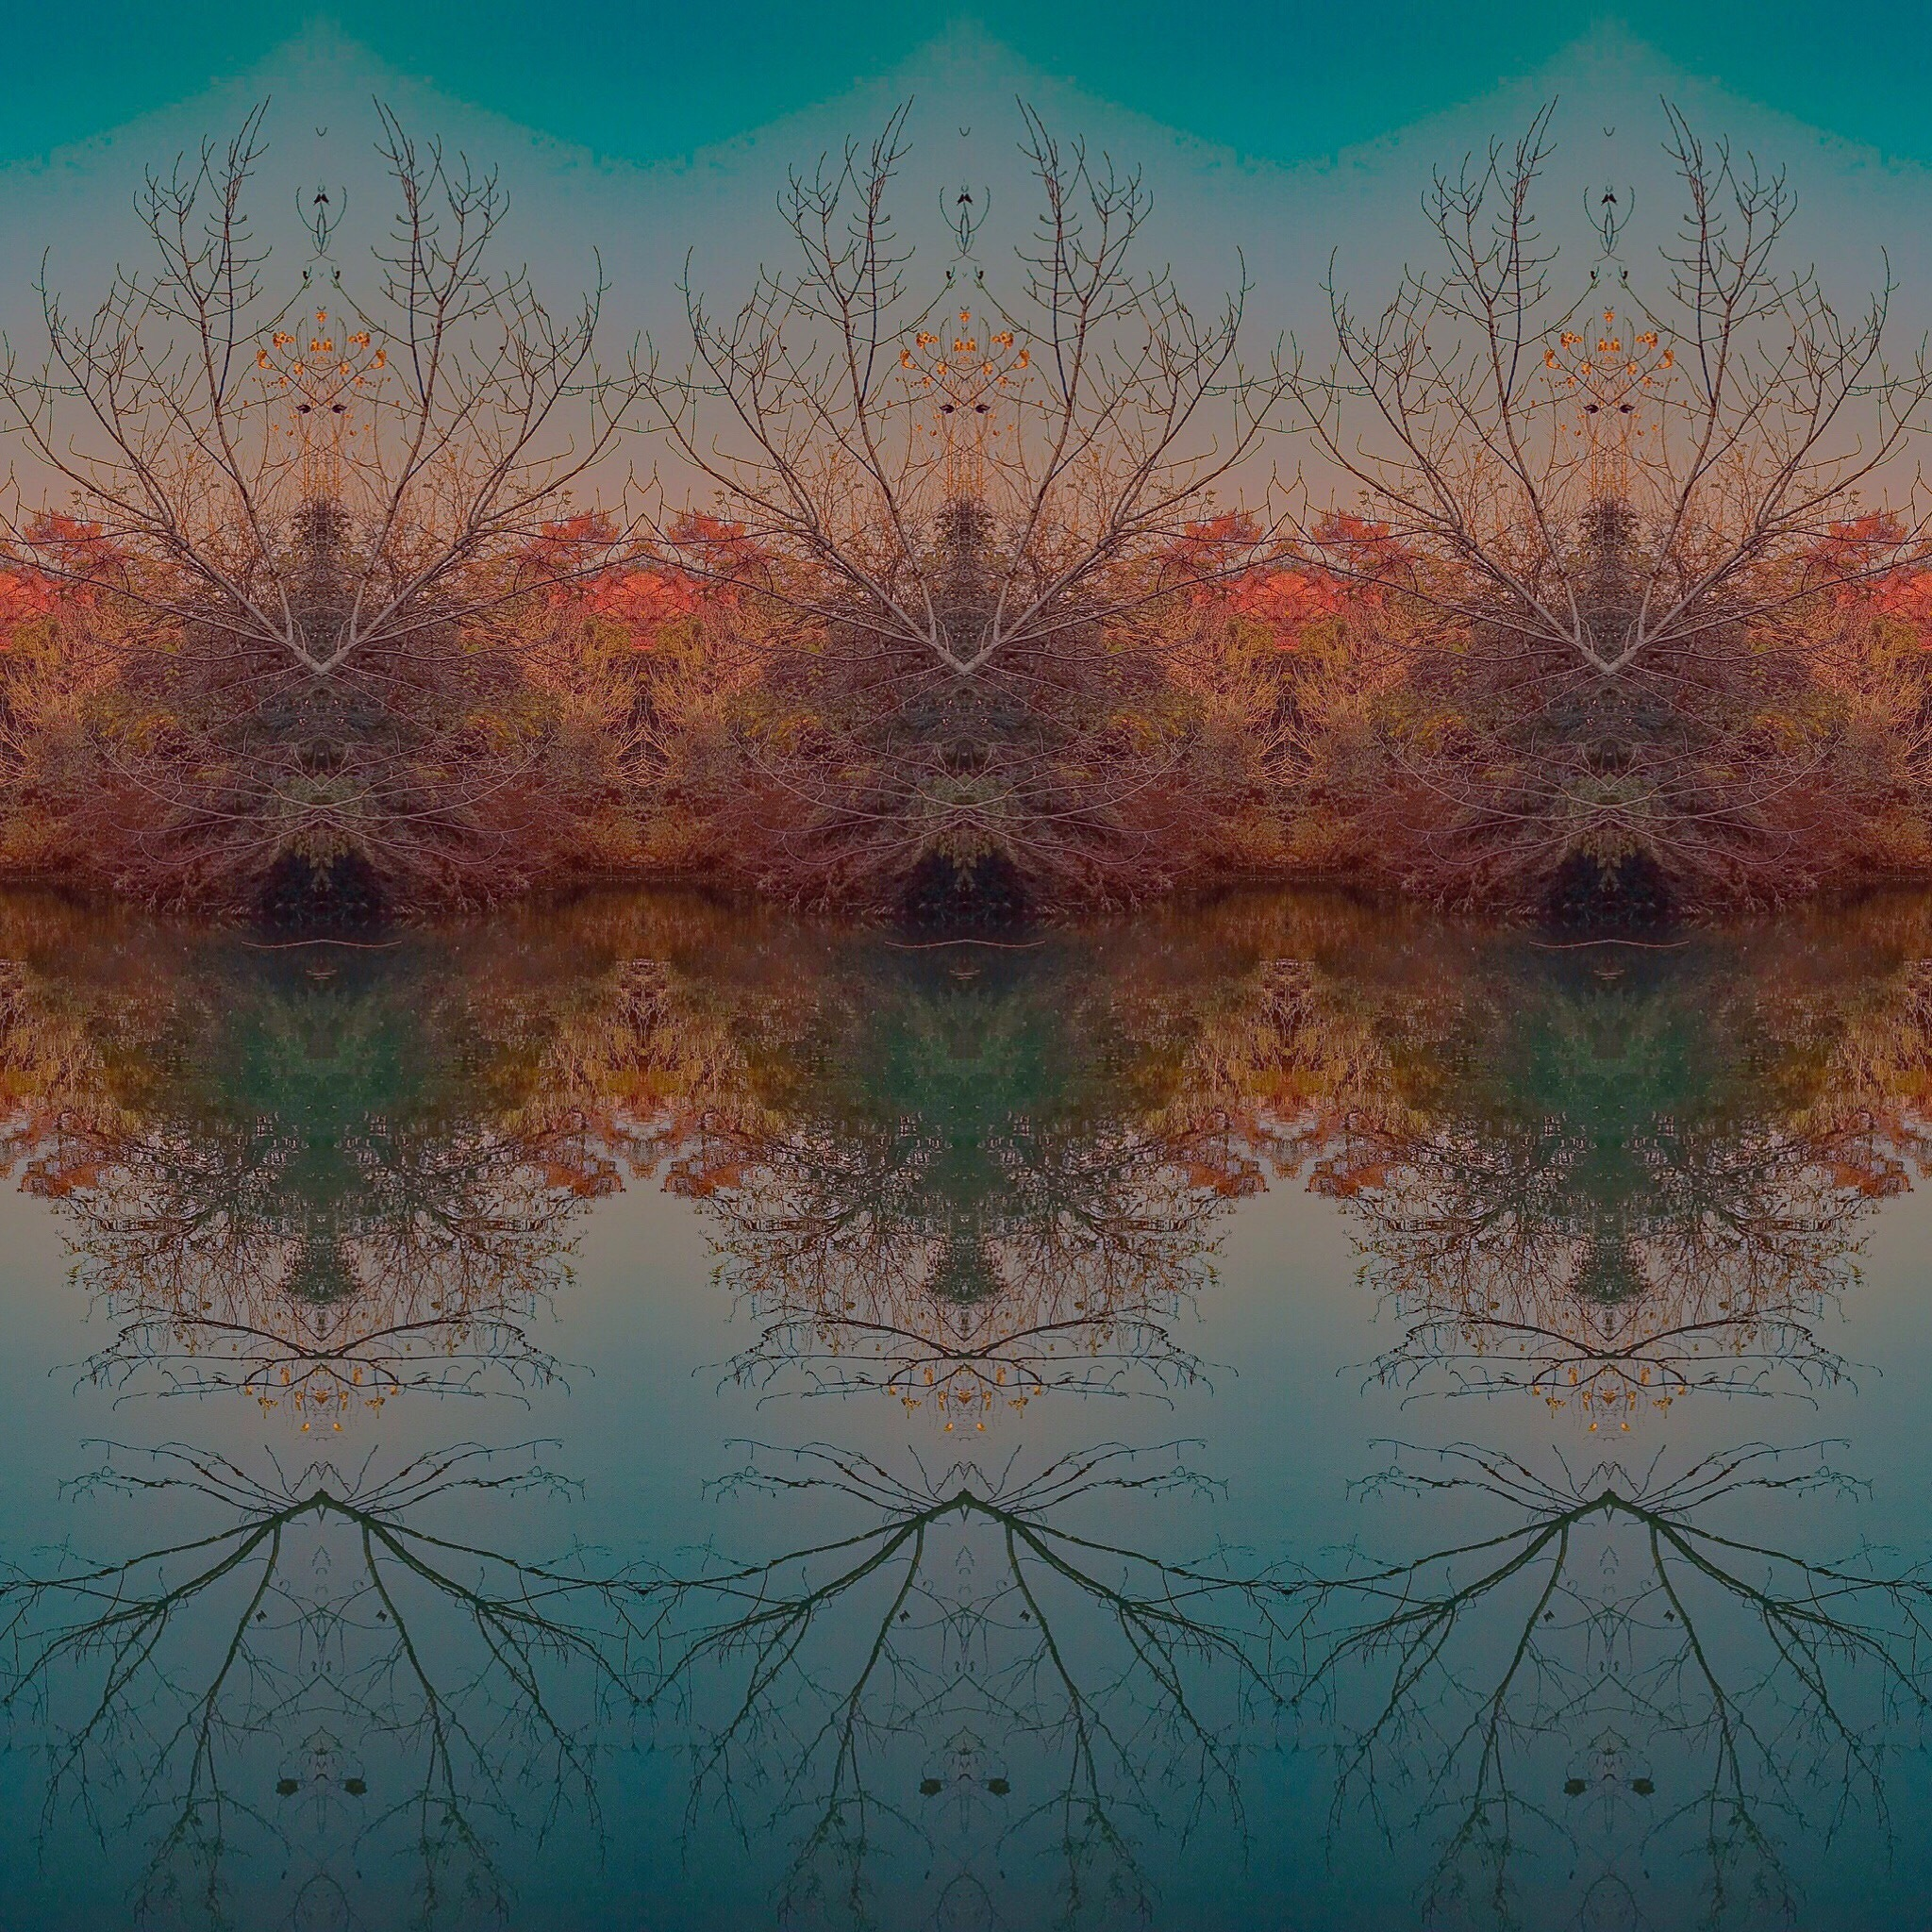 Abstract by manuel patti